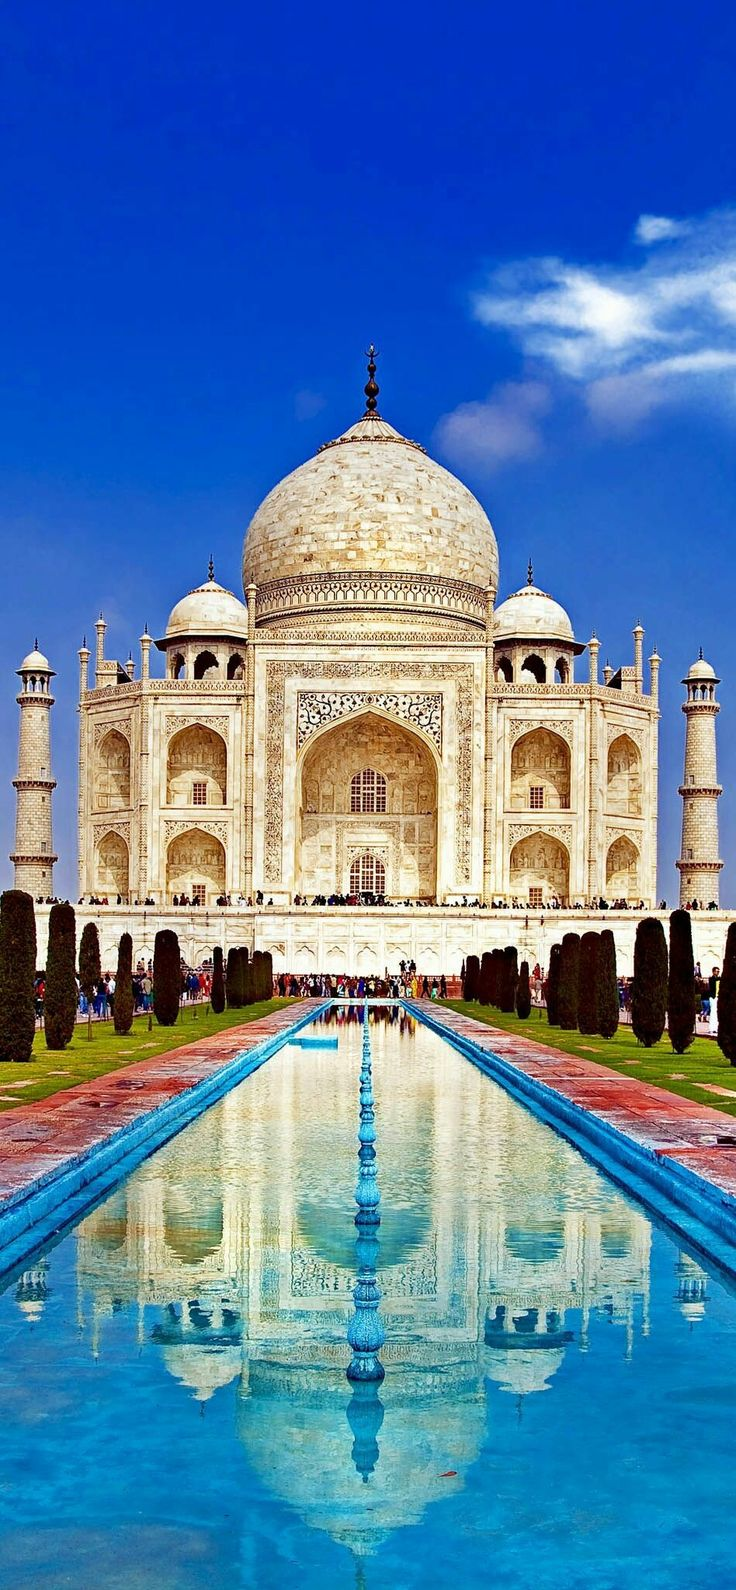 Taj Mahal, Golden Triangle, North India. On the backpacking route for Asia. Bucket list destination. 7 wonders of the world. International travel tips.